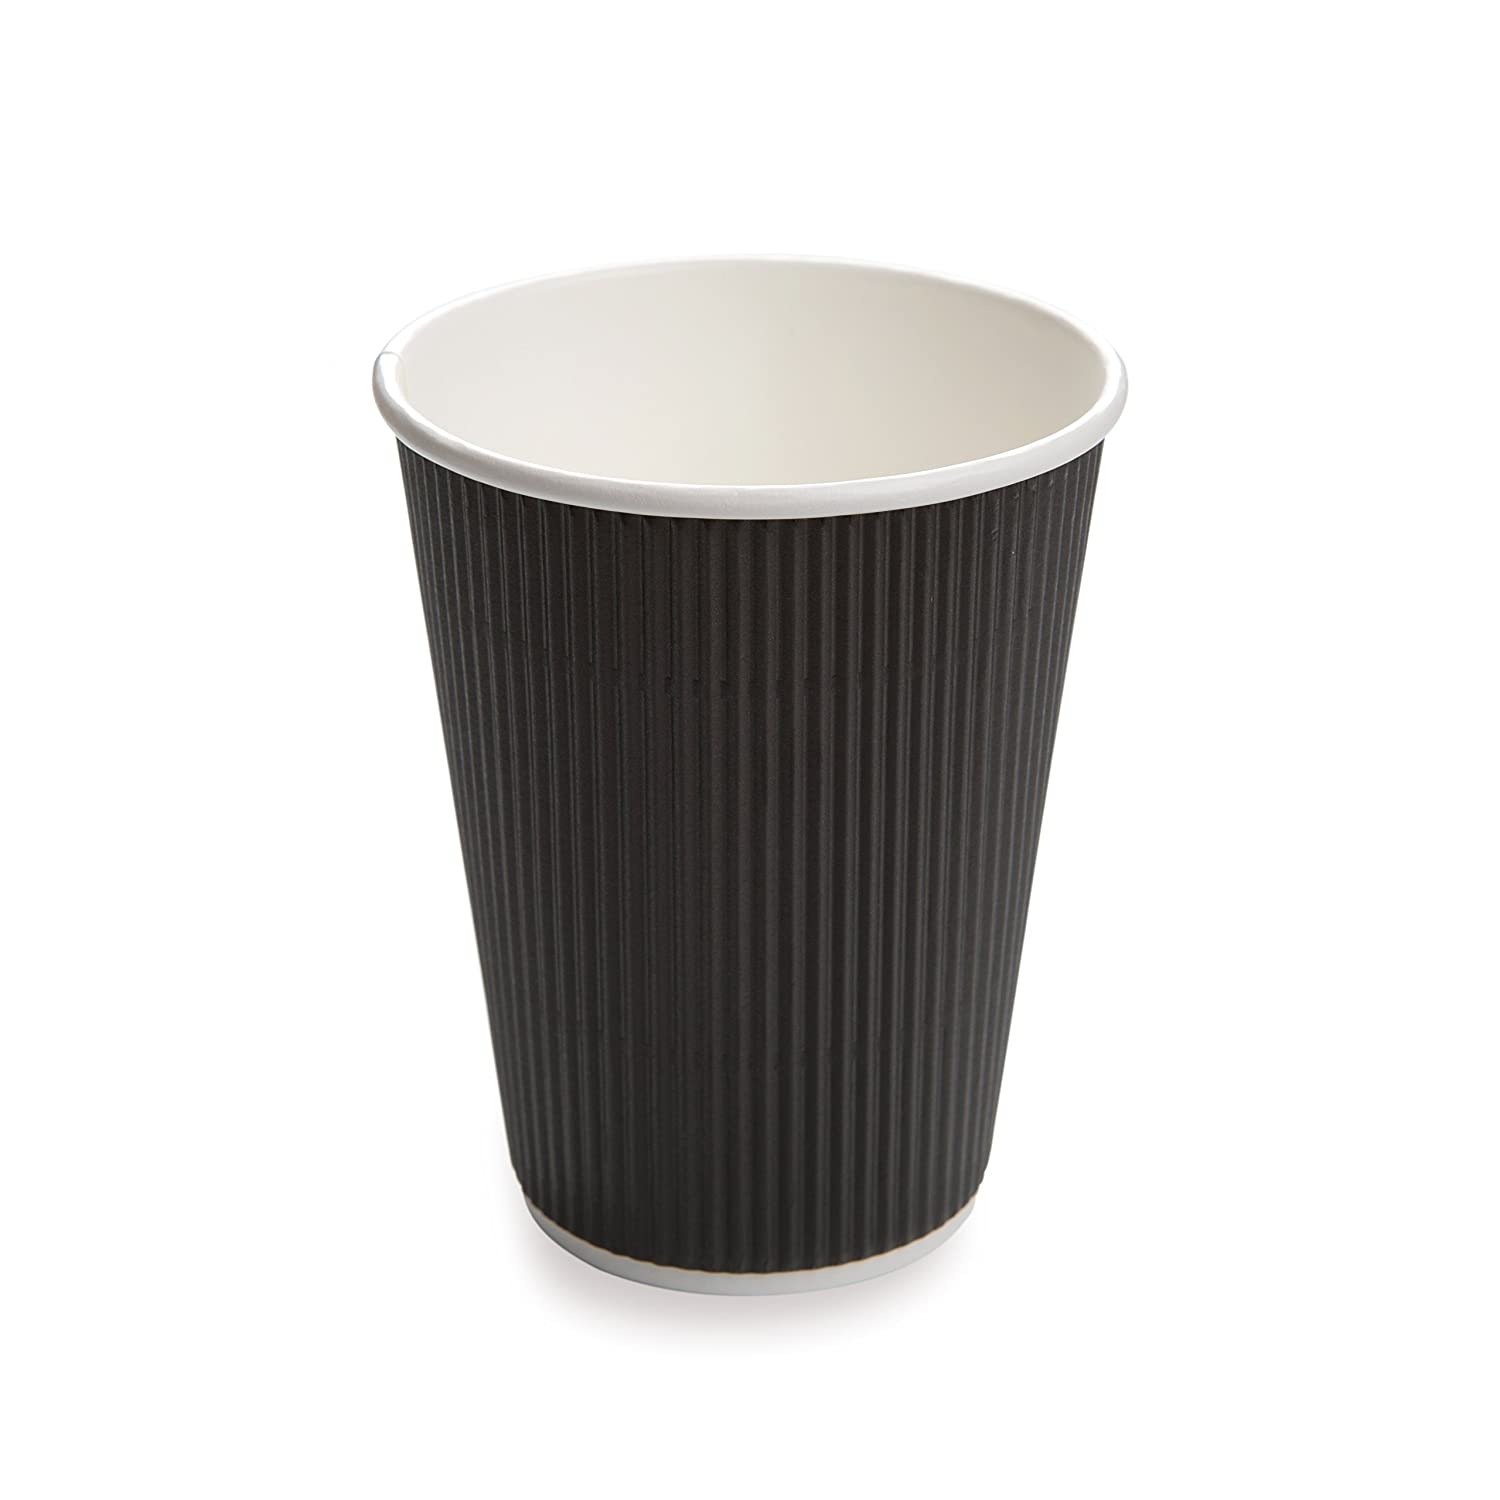 25-CT Disposable Black 4-OZ Hot Beverage Cups with Ripple Wall Design: No Need for Sleeves – Perfect for Cafes or Home Use – Eco-Friendly Recyclable Paper – Insulated – Wholesale Takeout Coffee Cup Restaurantware RWA0277B-25